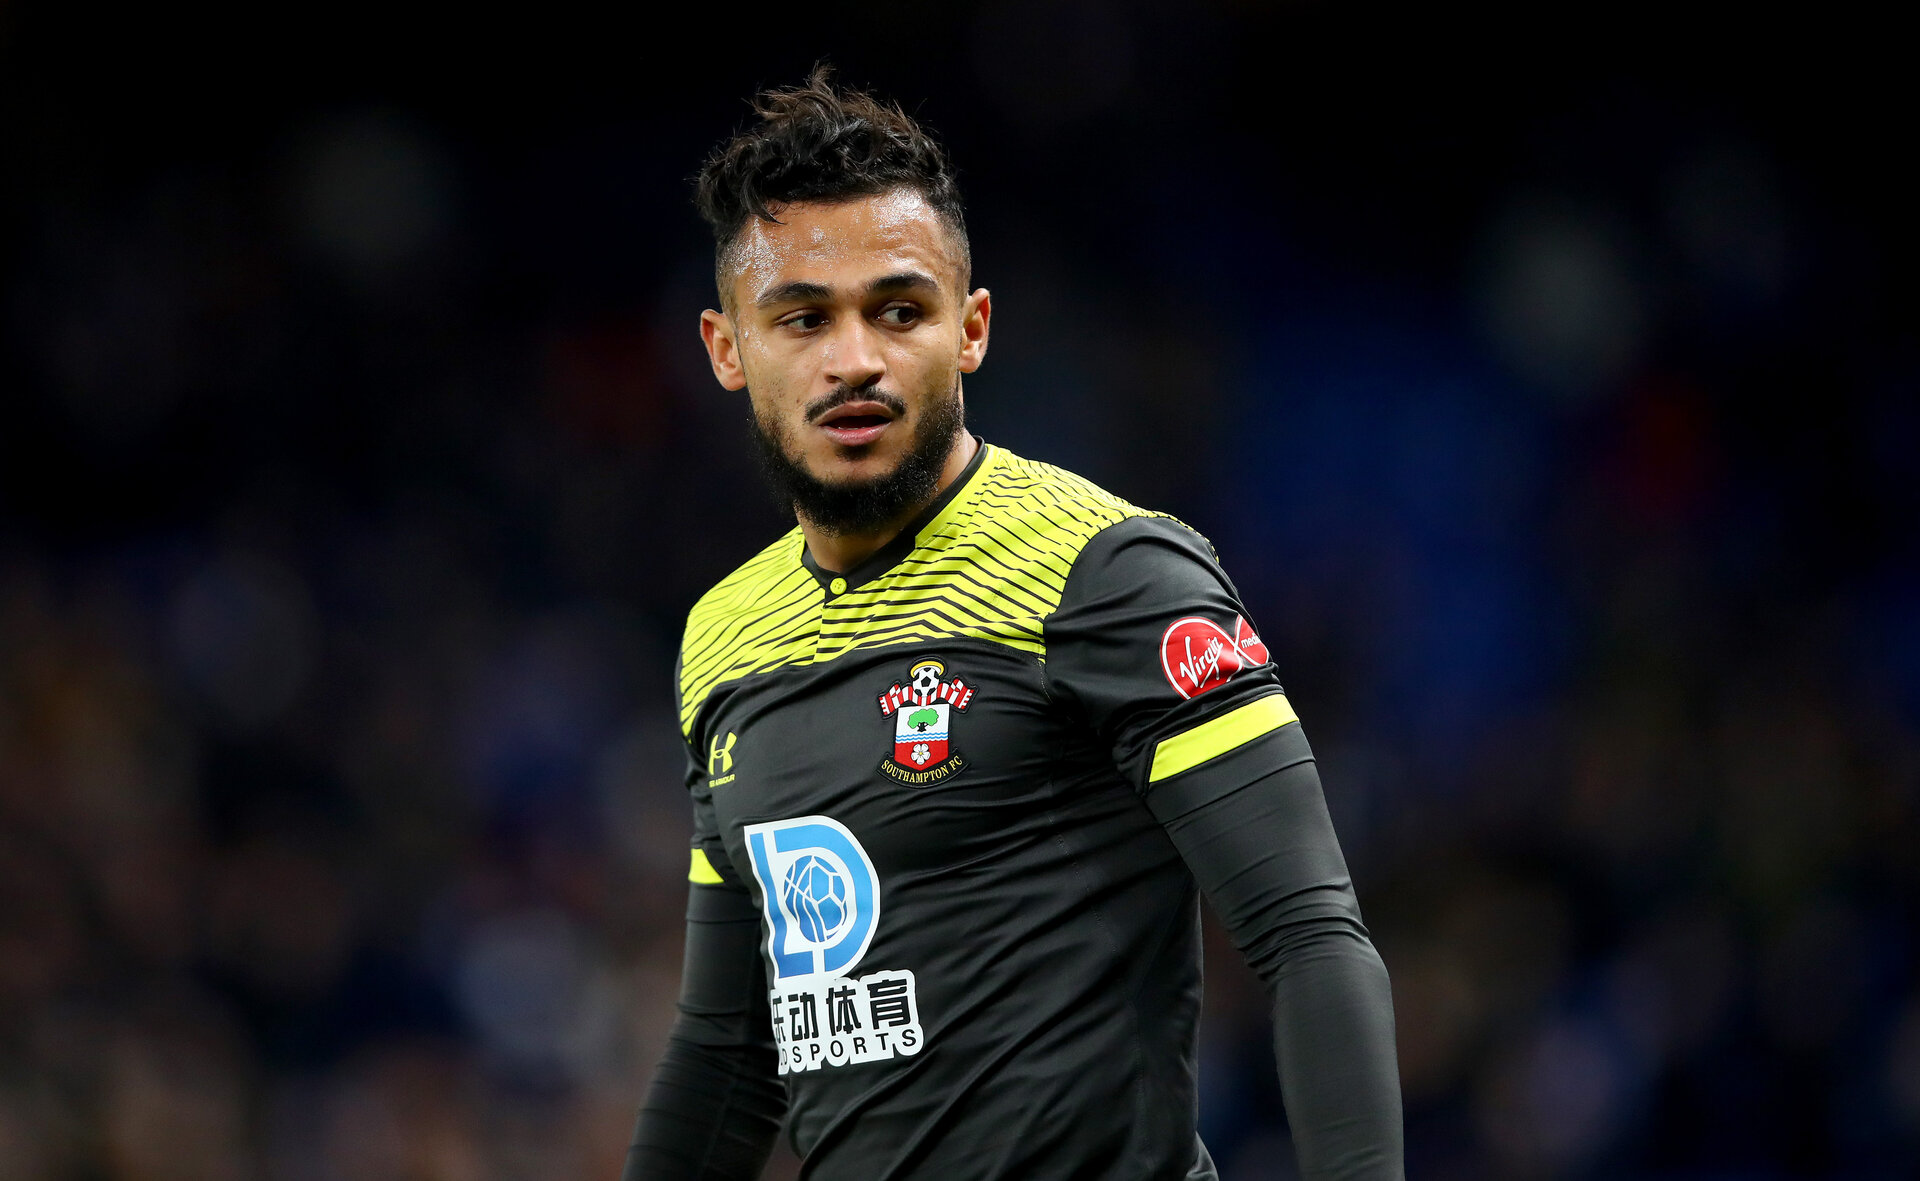 LONDON, ENGLAND - DECEMBER 26: Sofiane Boufal of Southampton during the Premier League match between Chelsea FC and Southampton FC at Stamford Bridge on December 26, 2019 in London, United Kingdom. (Photo by Matt Watson/Getty Images)